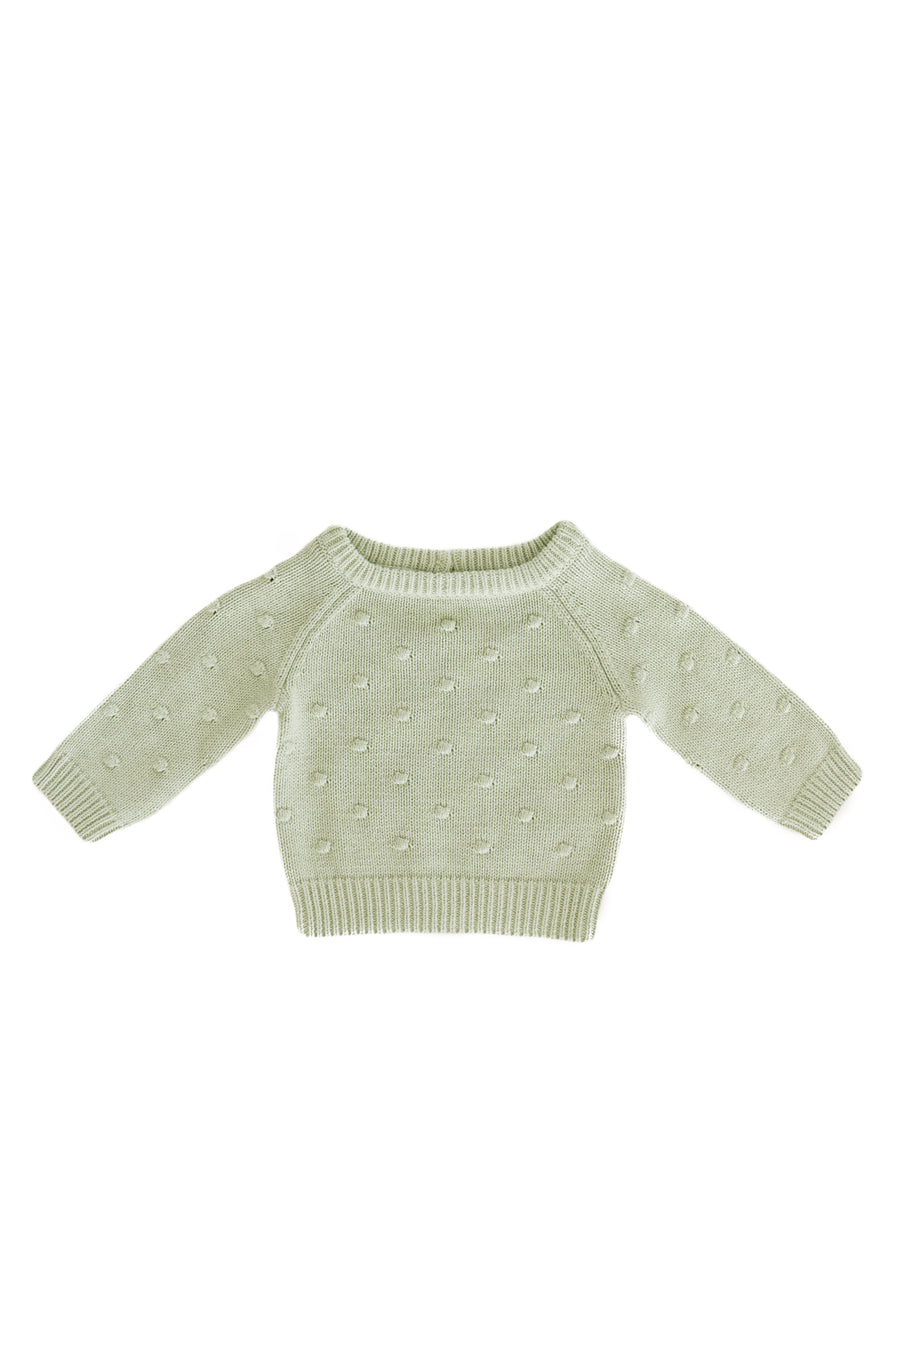 Dotty Knit | Alfalfa Marle